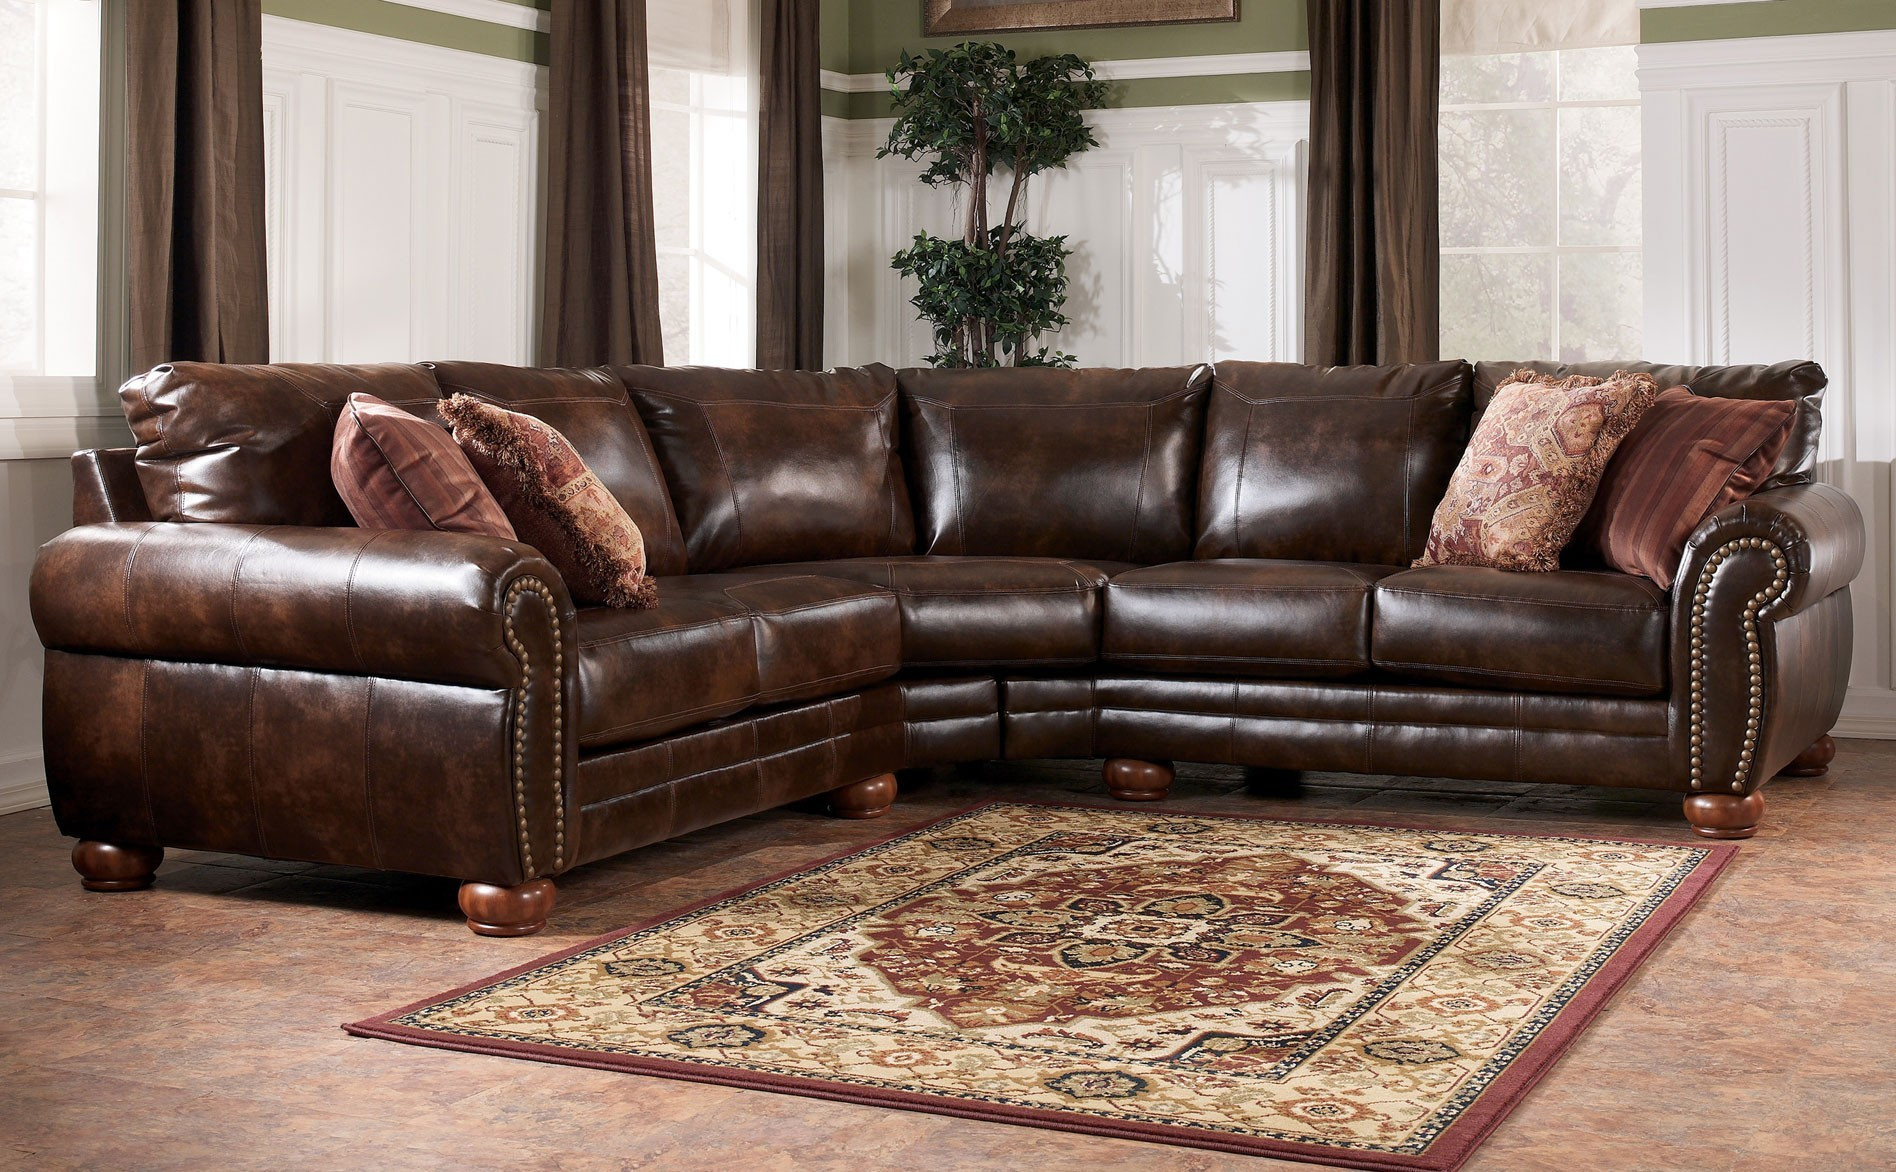 Best ideas about Costco Sofa Set . Save or Pin Leather Sofa Set Costco Plaza Top Grain Leather Sofa And Now.